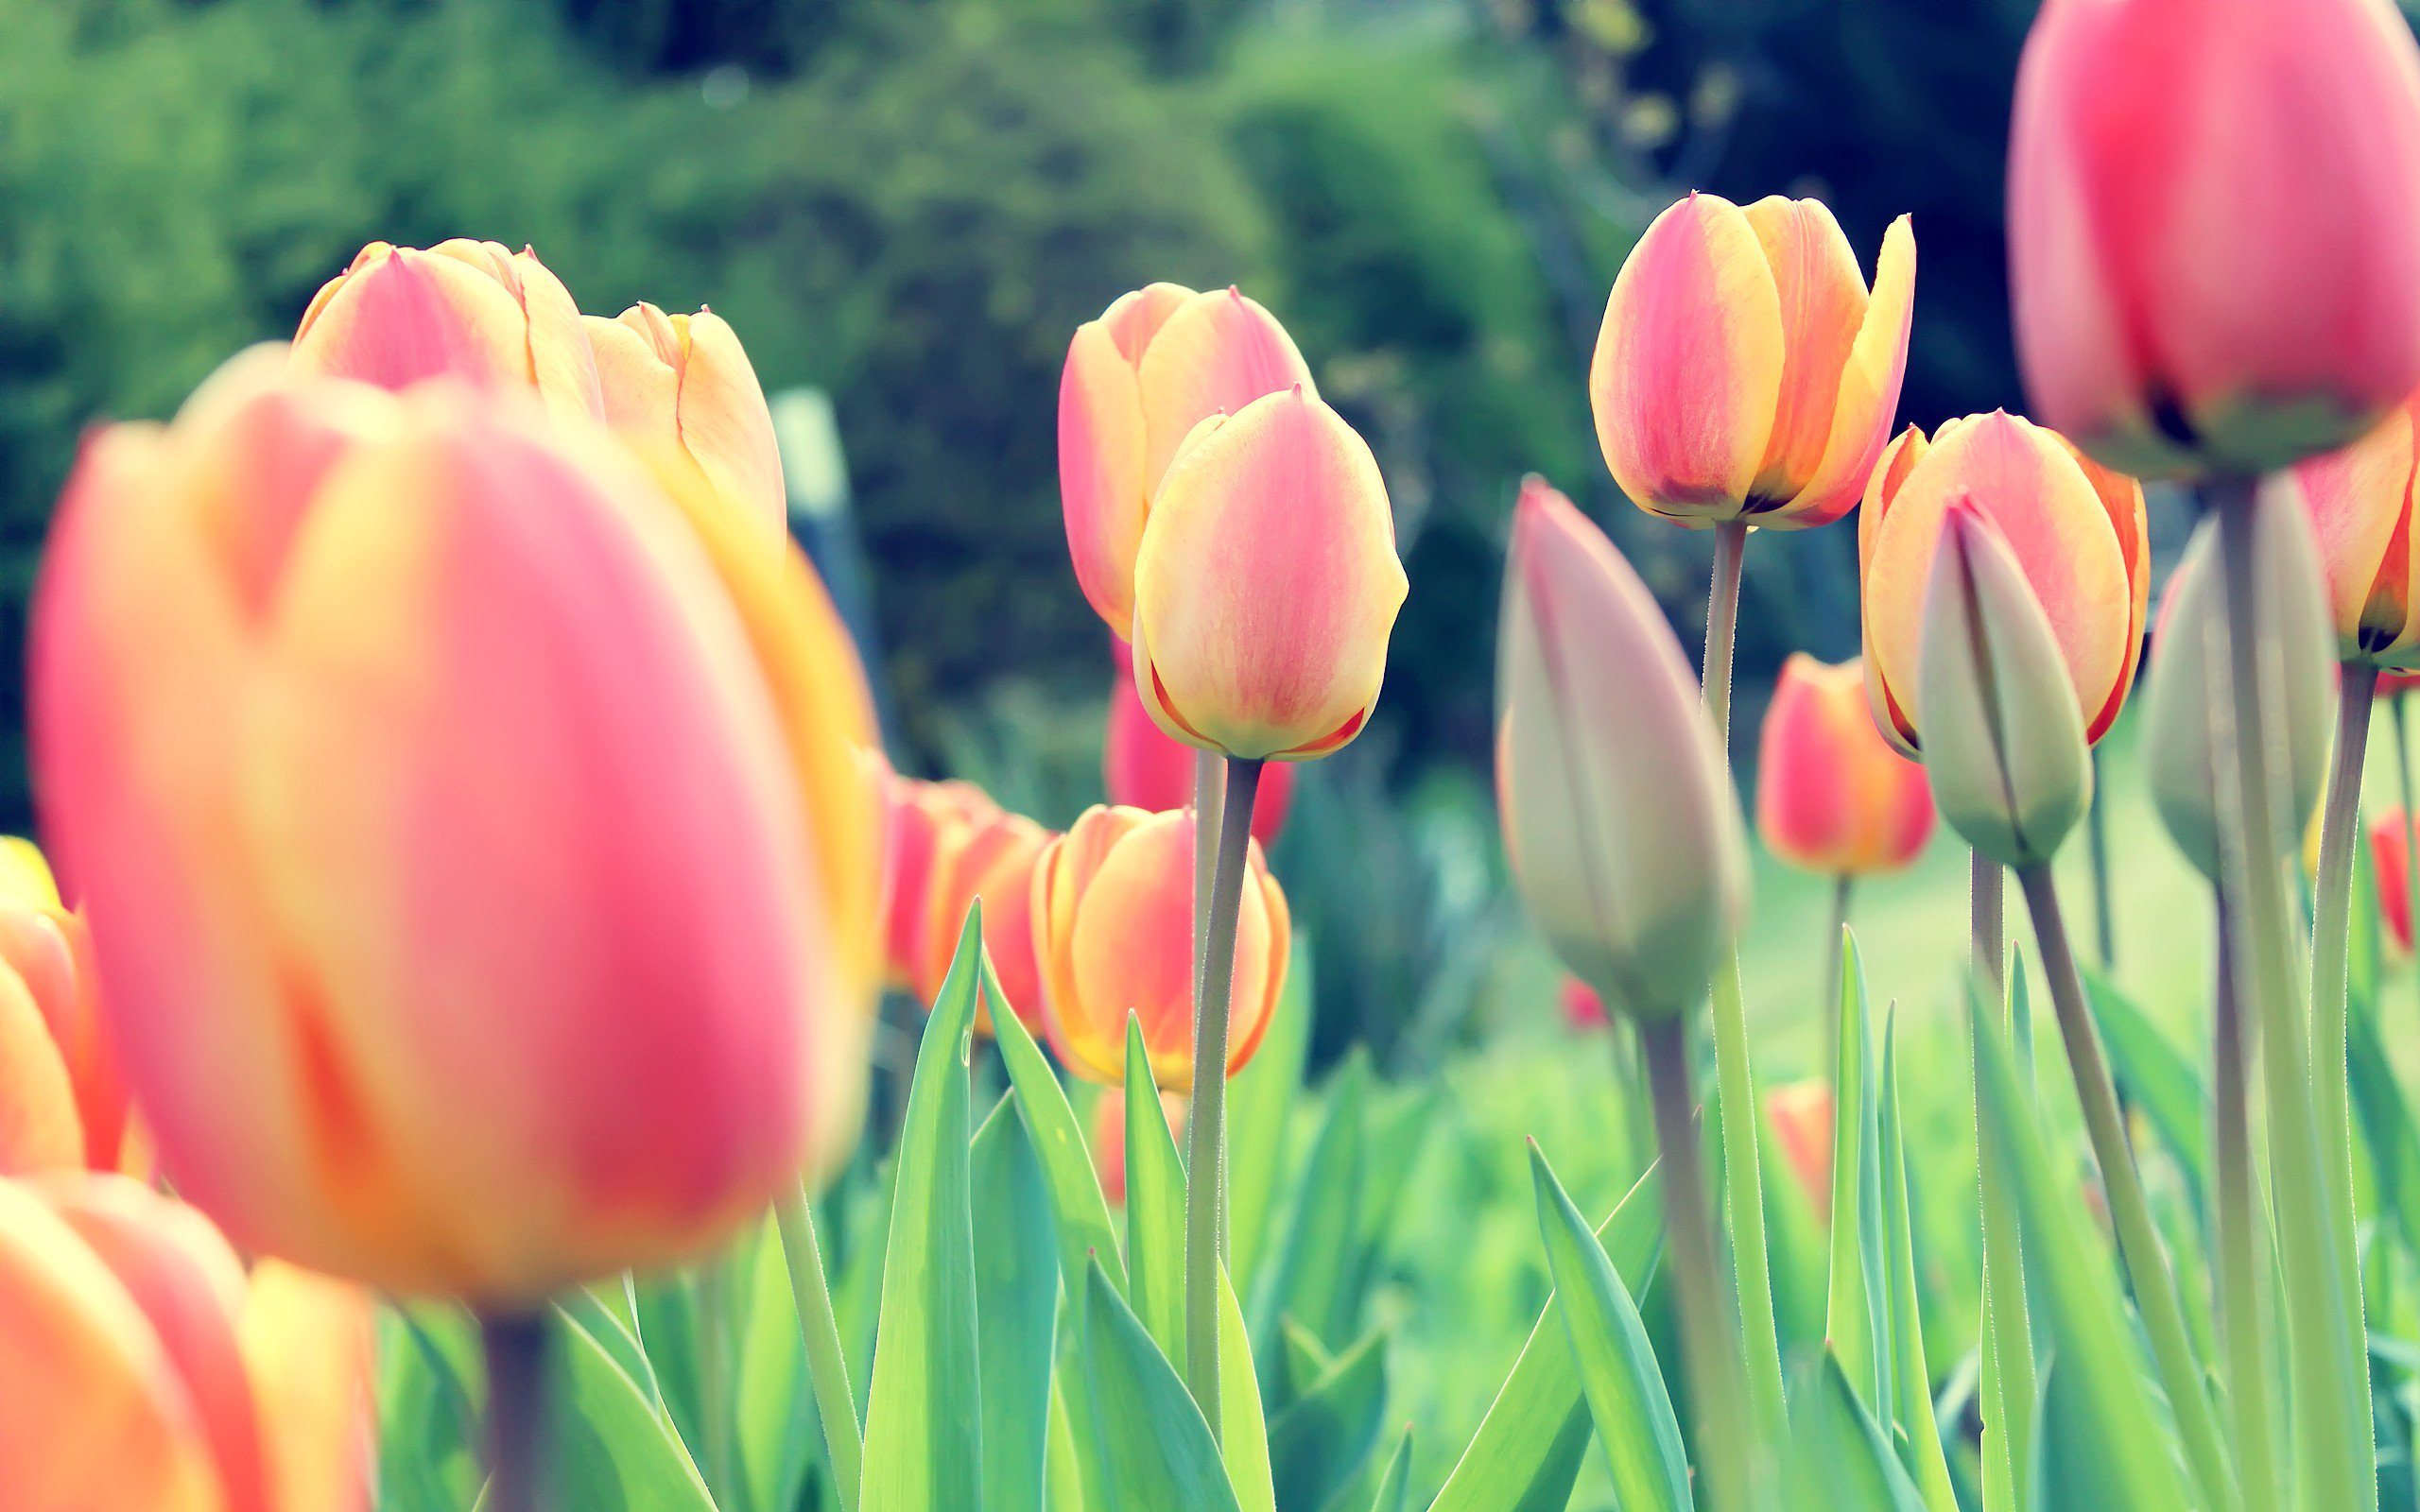 Easter Tulips HD Flowers 4k Wallpapers Images Backgrounds